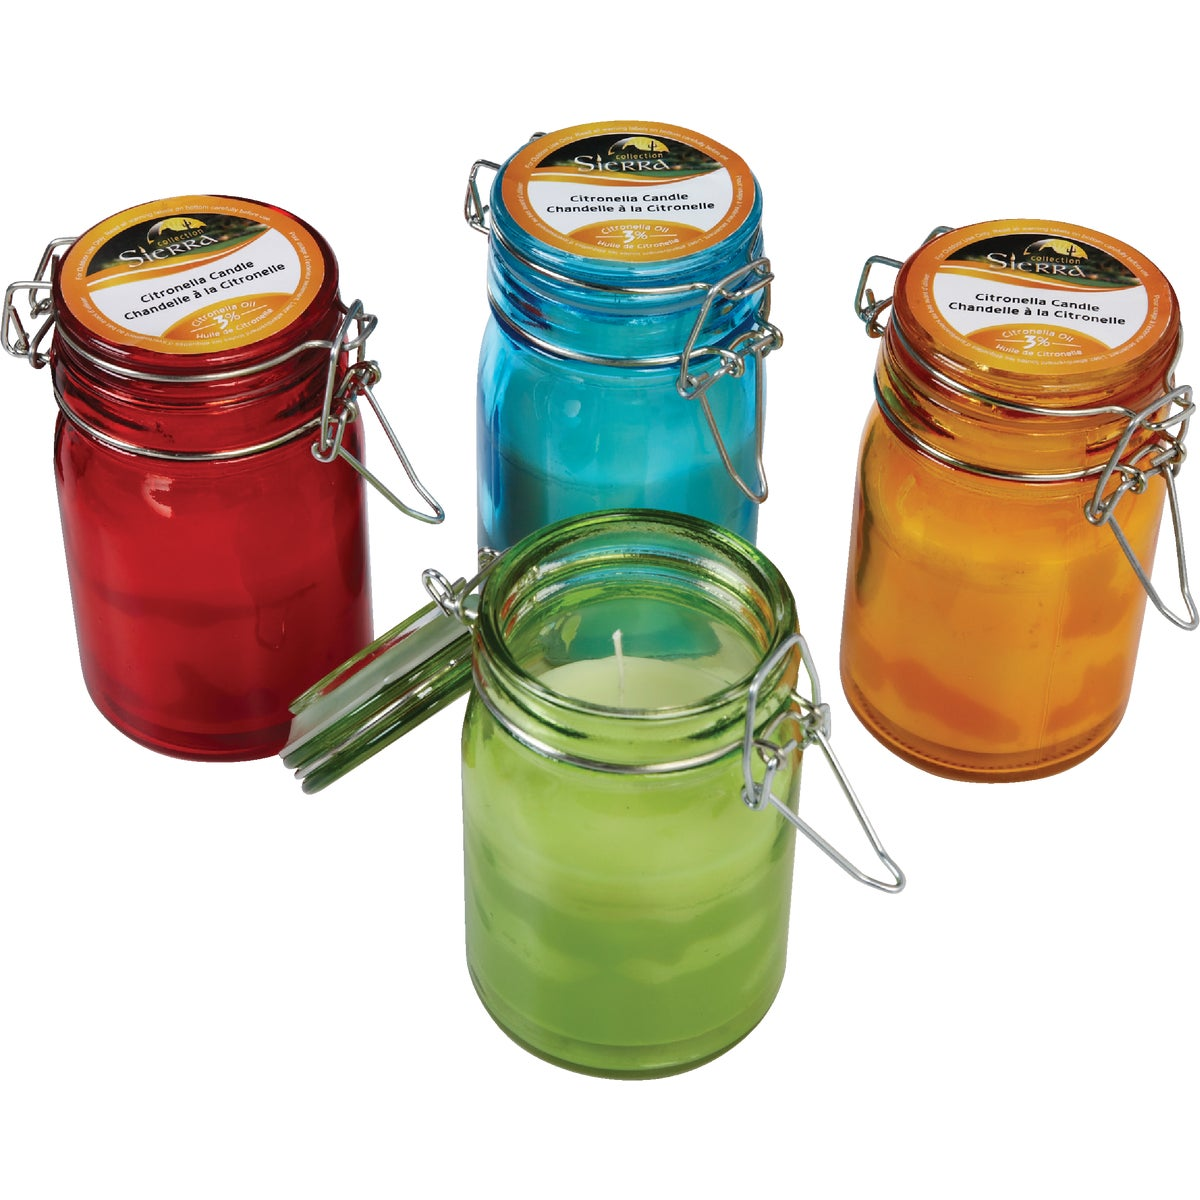 MASON JAR GLASS CANDLE - JTPC0685 by Jay Trends